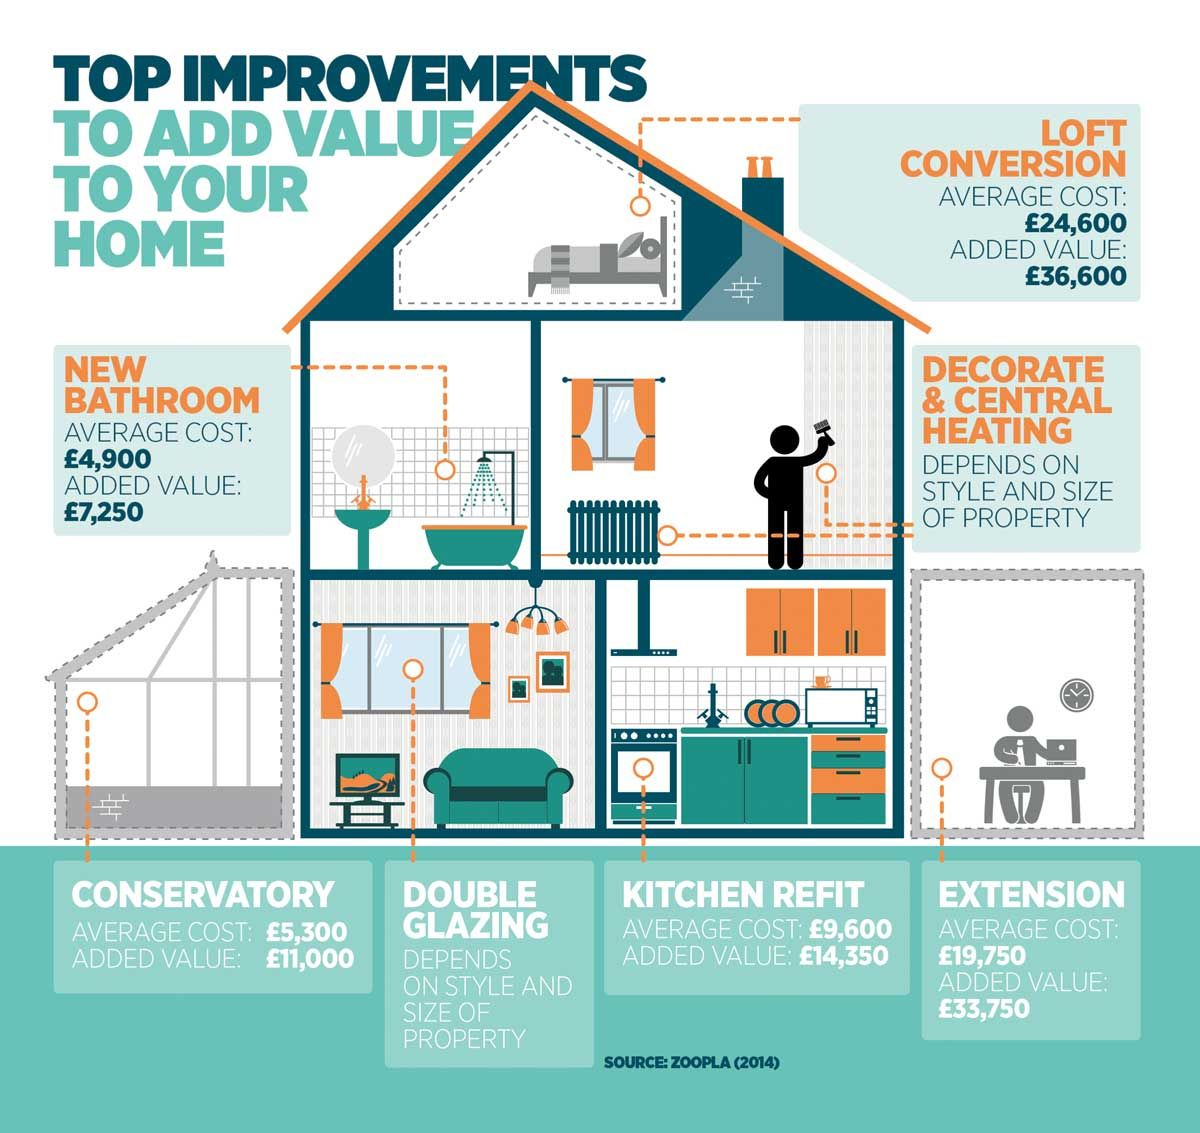 Home Upgrades That Add Value: Guide To The Improvements That Add Value To Your Home